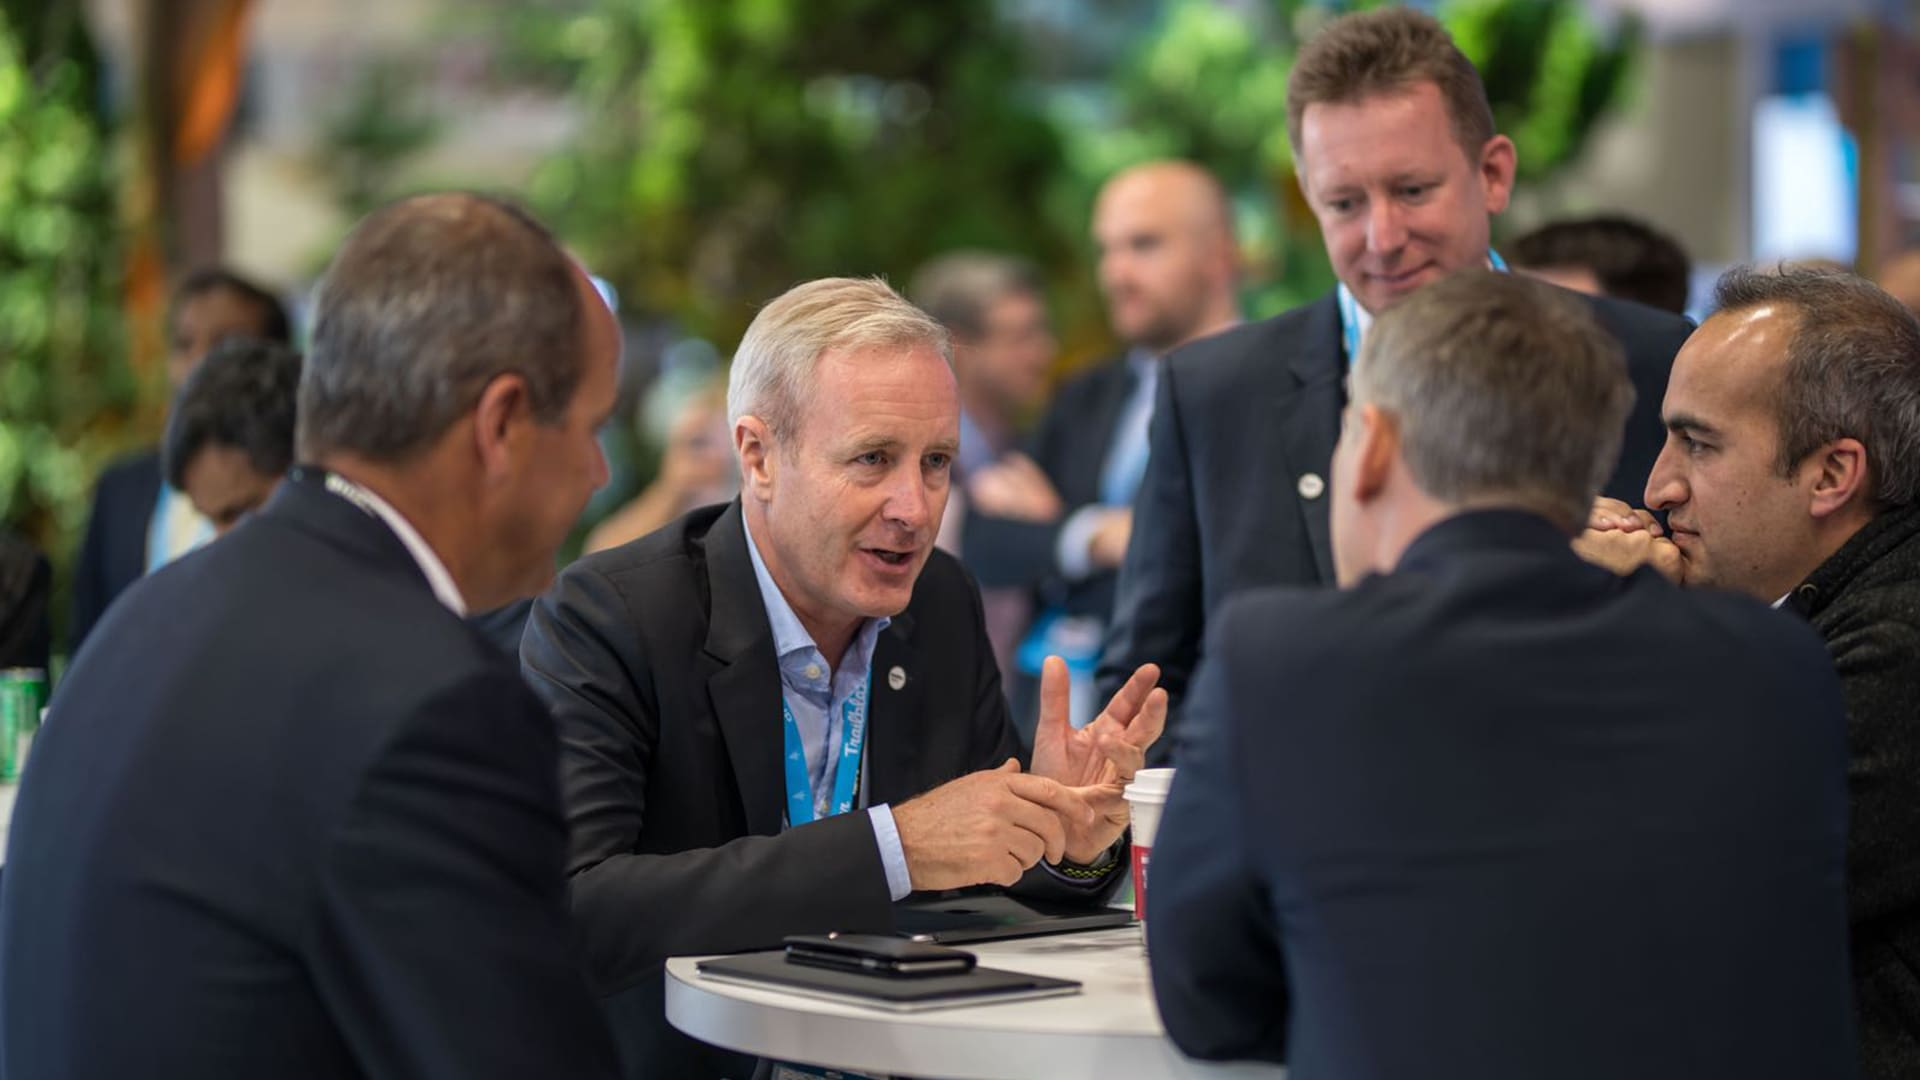 Men talking in a group at Dreamforce